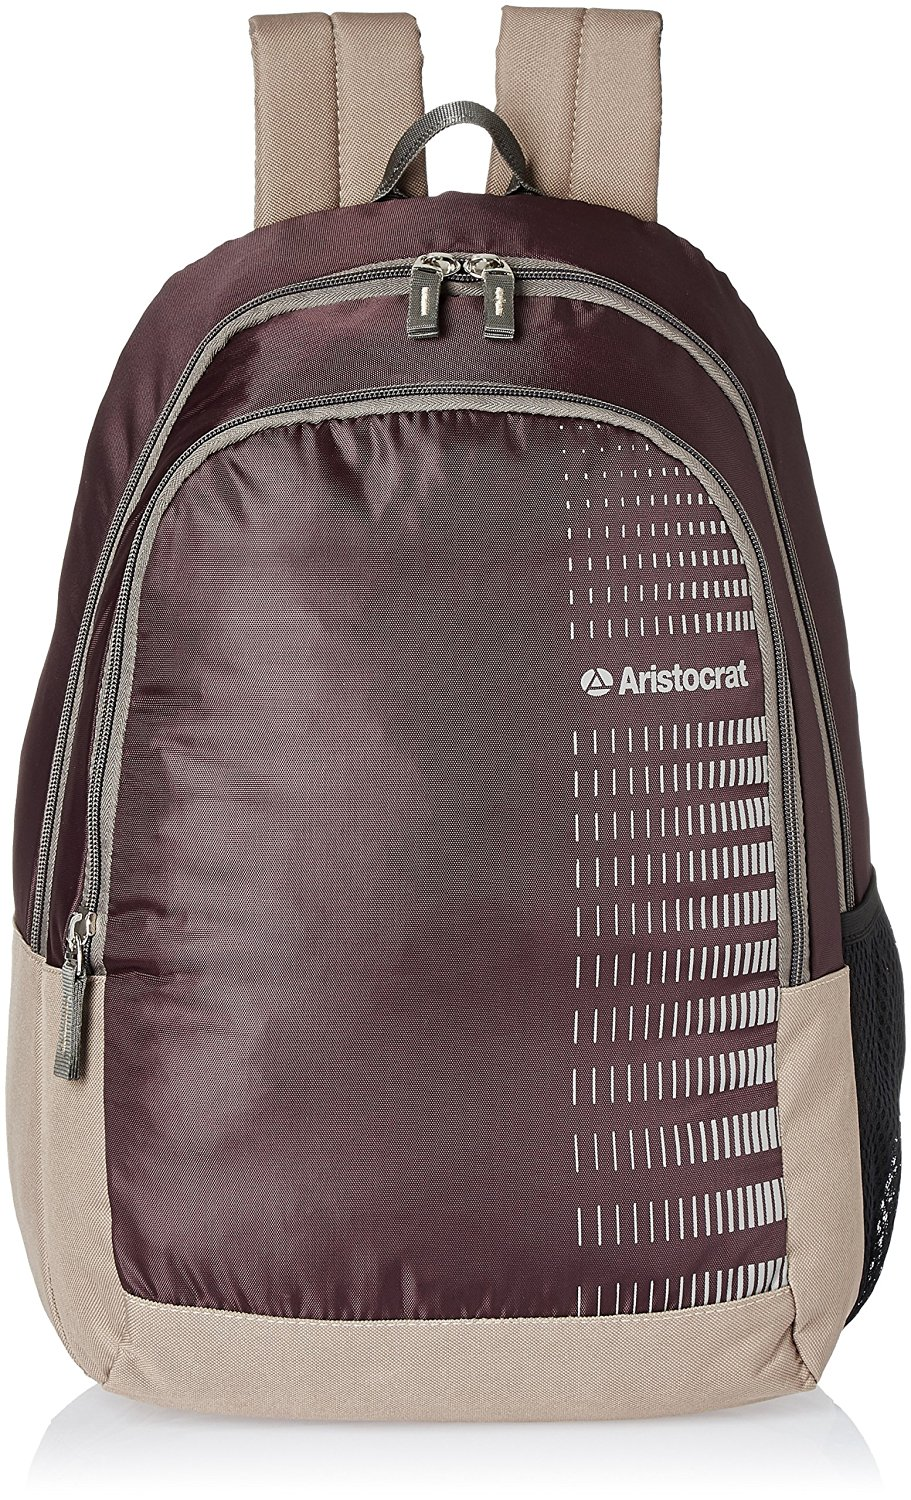 (# 1 BestSeller) Get Aristocrat Backpack at FLAT 55% Off + Extra 30% Off discount offer